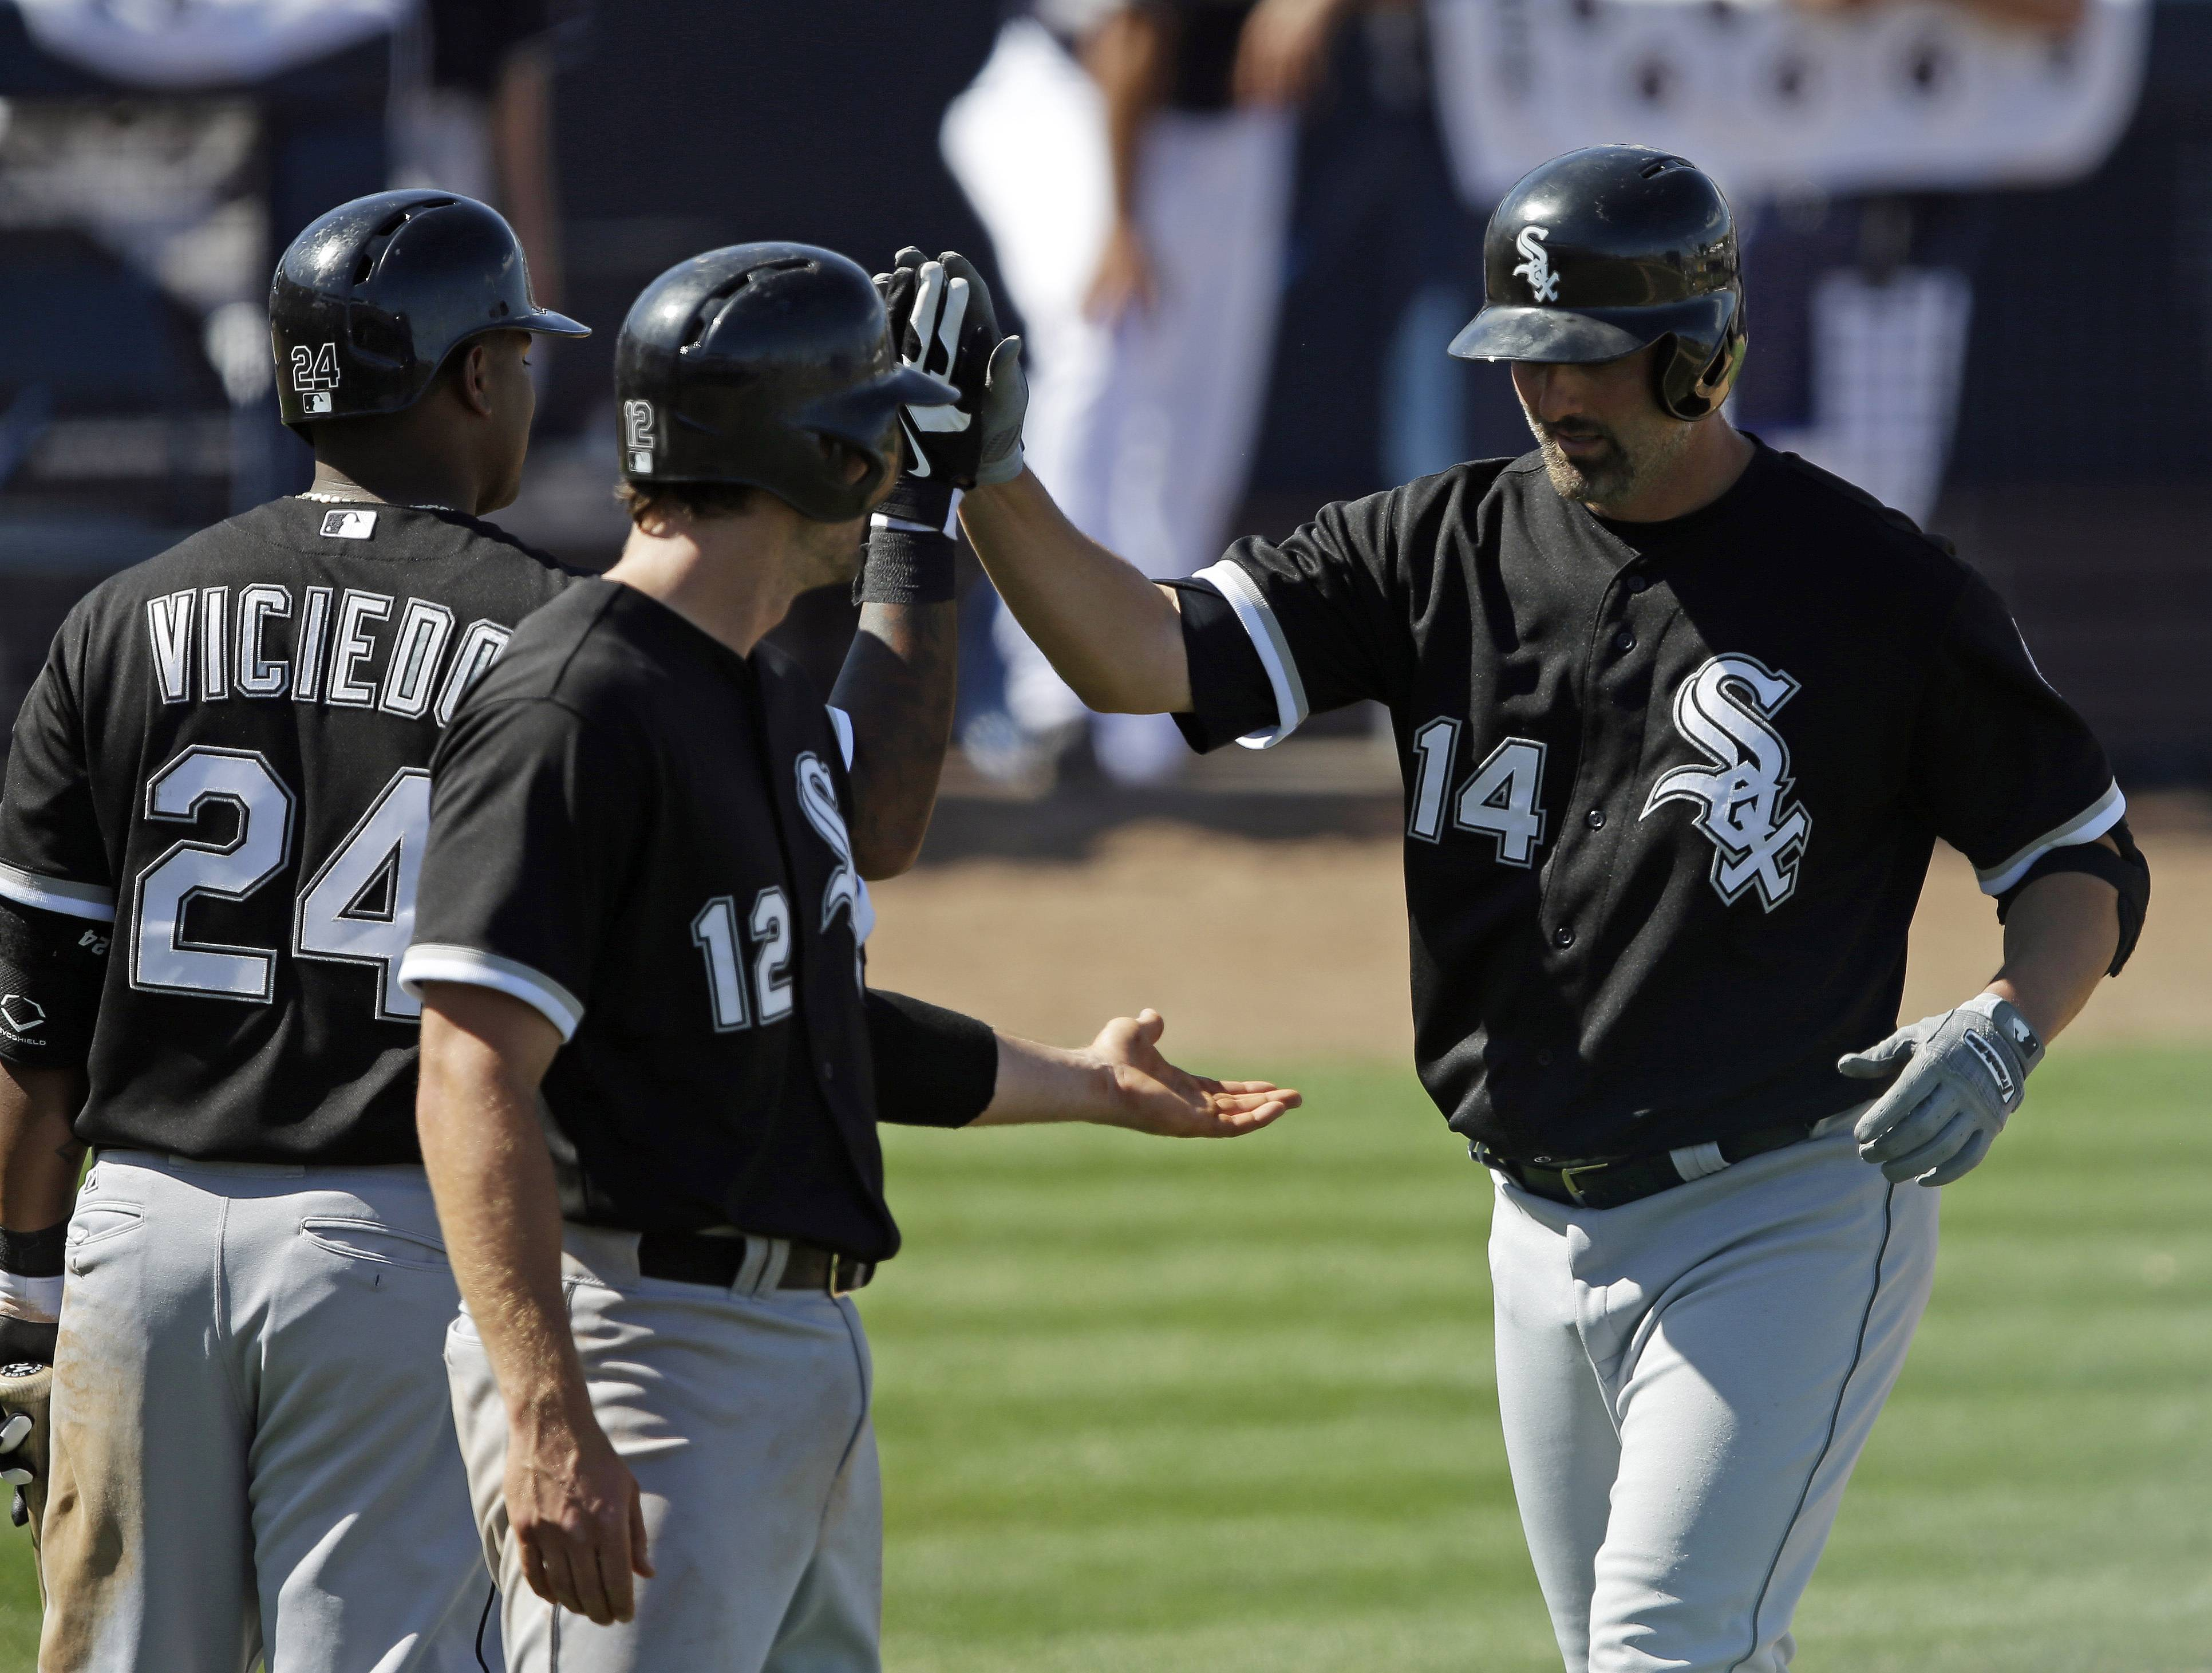 Sox' Konerko ready for his final big-league go-round